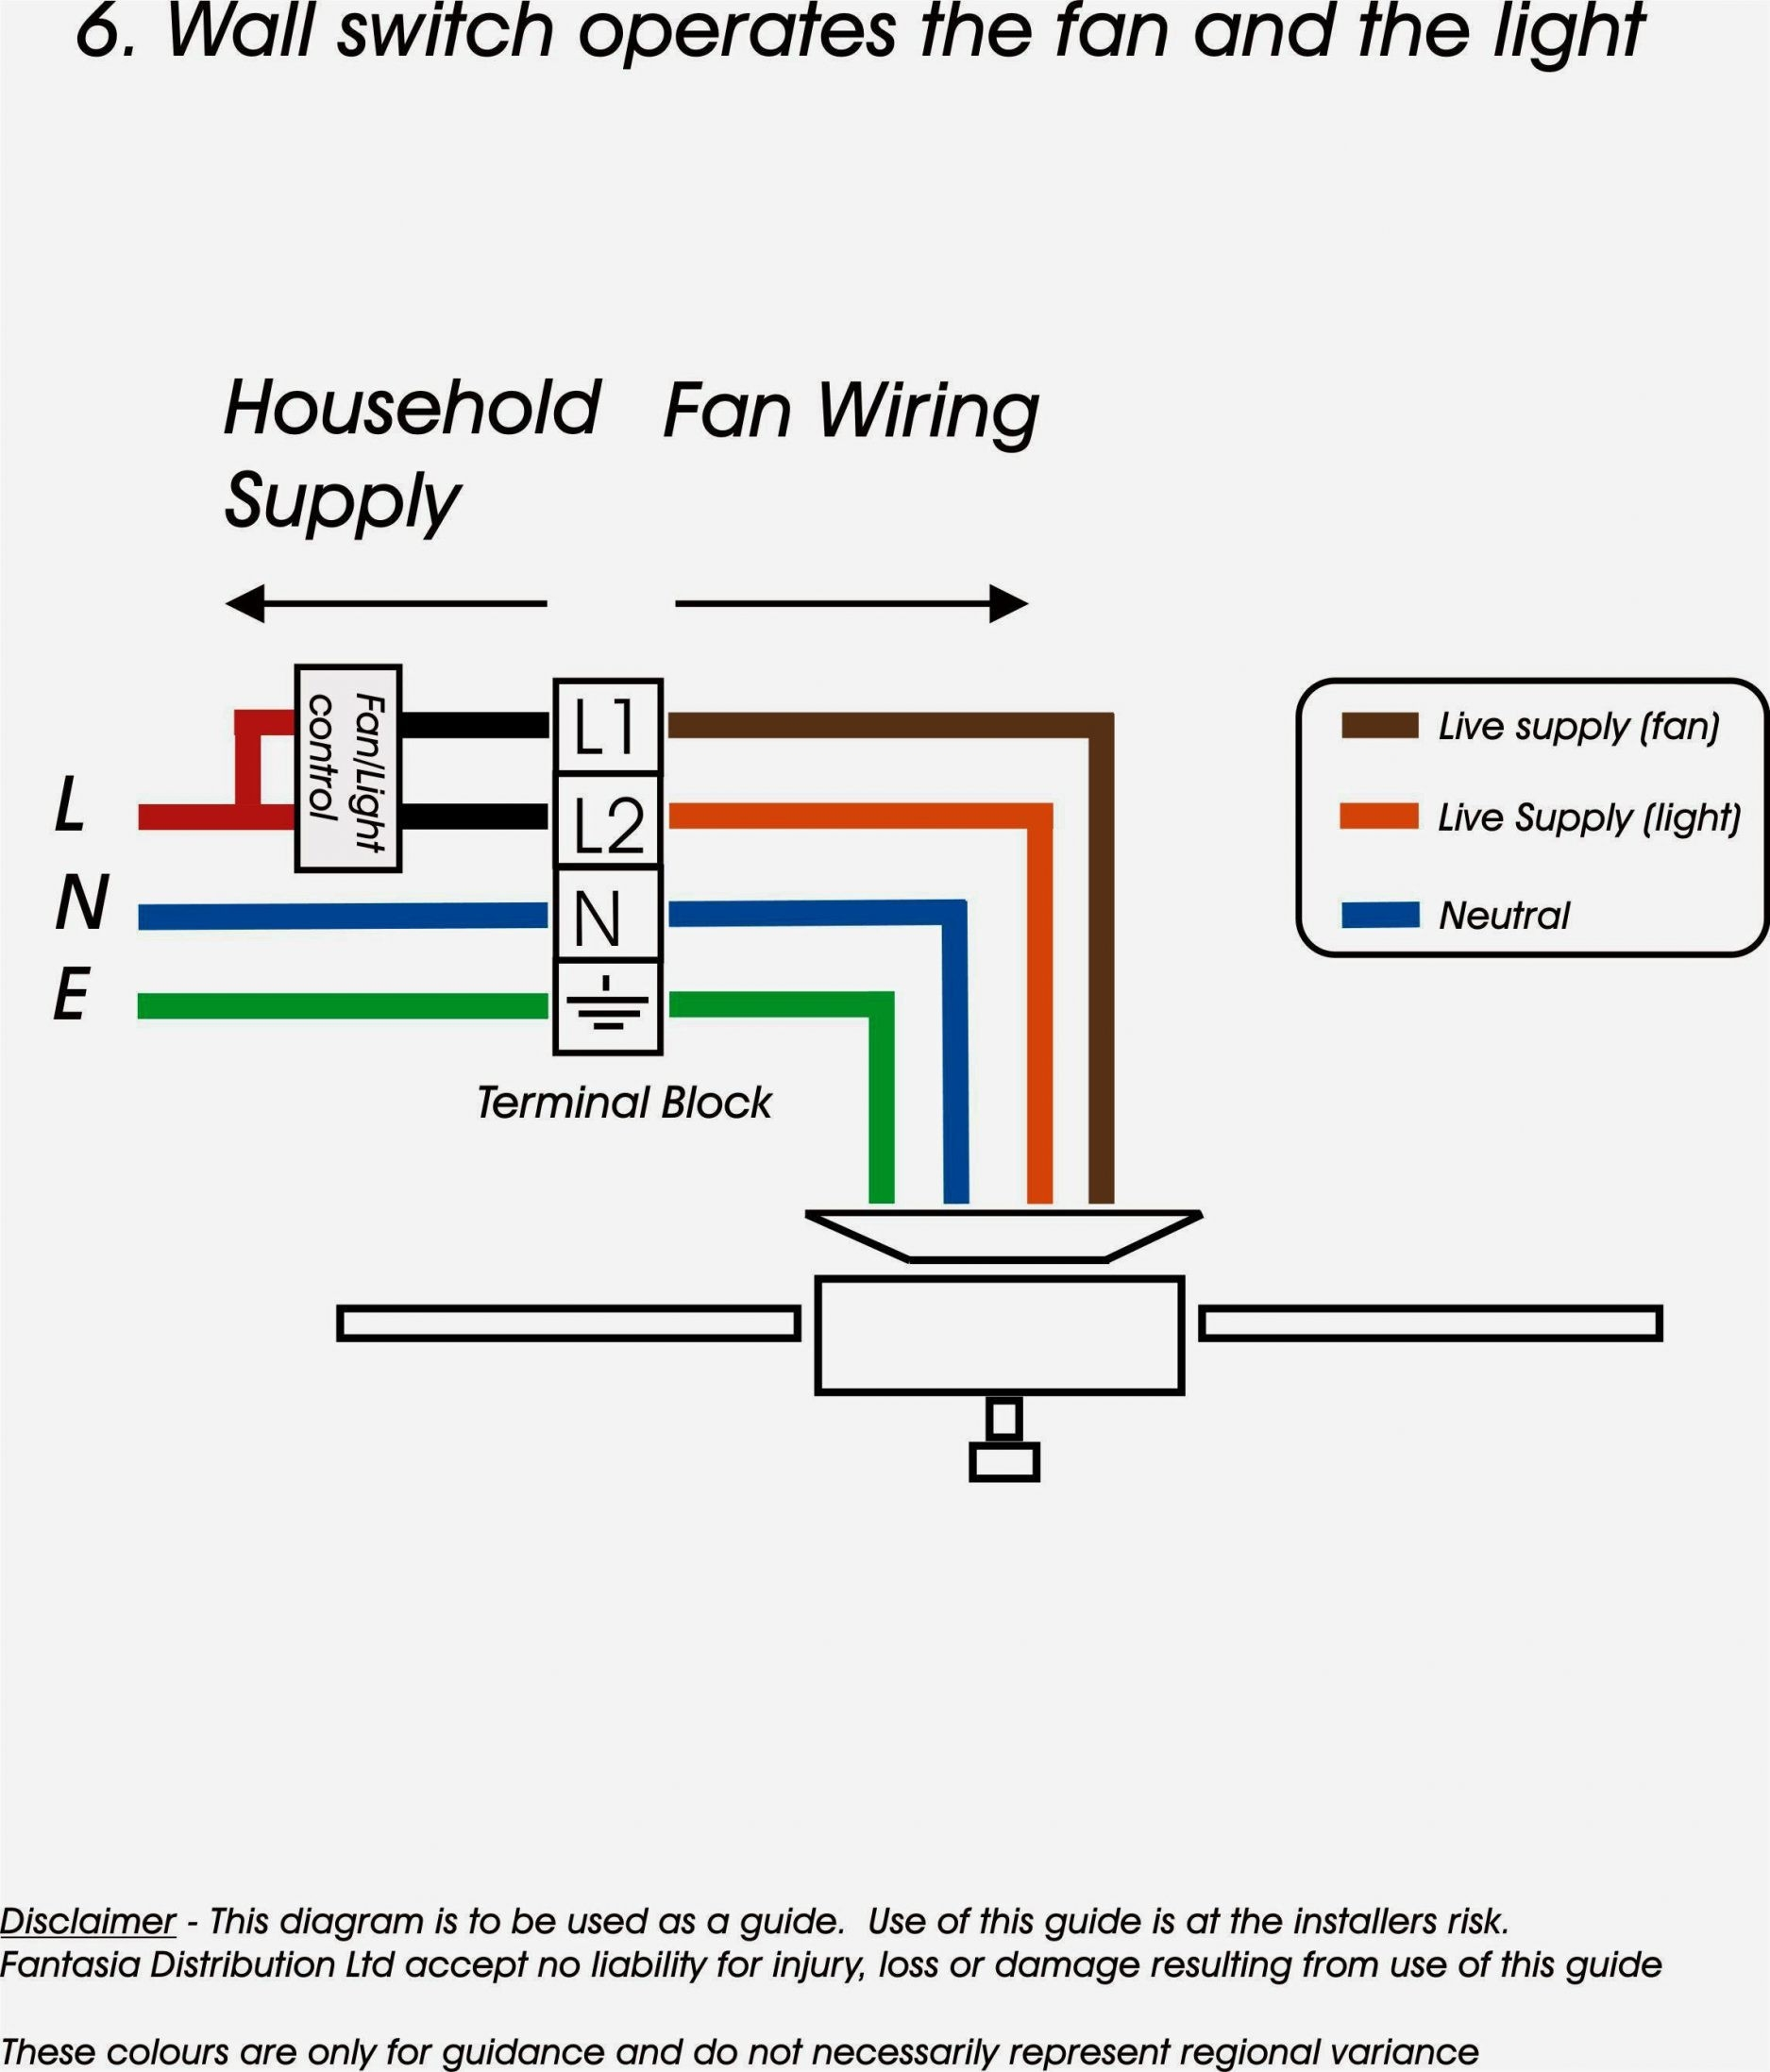 workhorse ballast wh5 wiring diagram fulham wh5 120 l wiring diagram | free wiring diagram wh5 120l wiring diagram #1